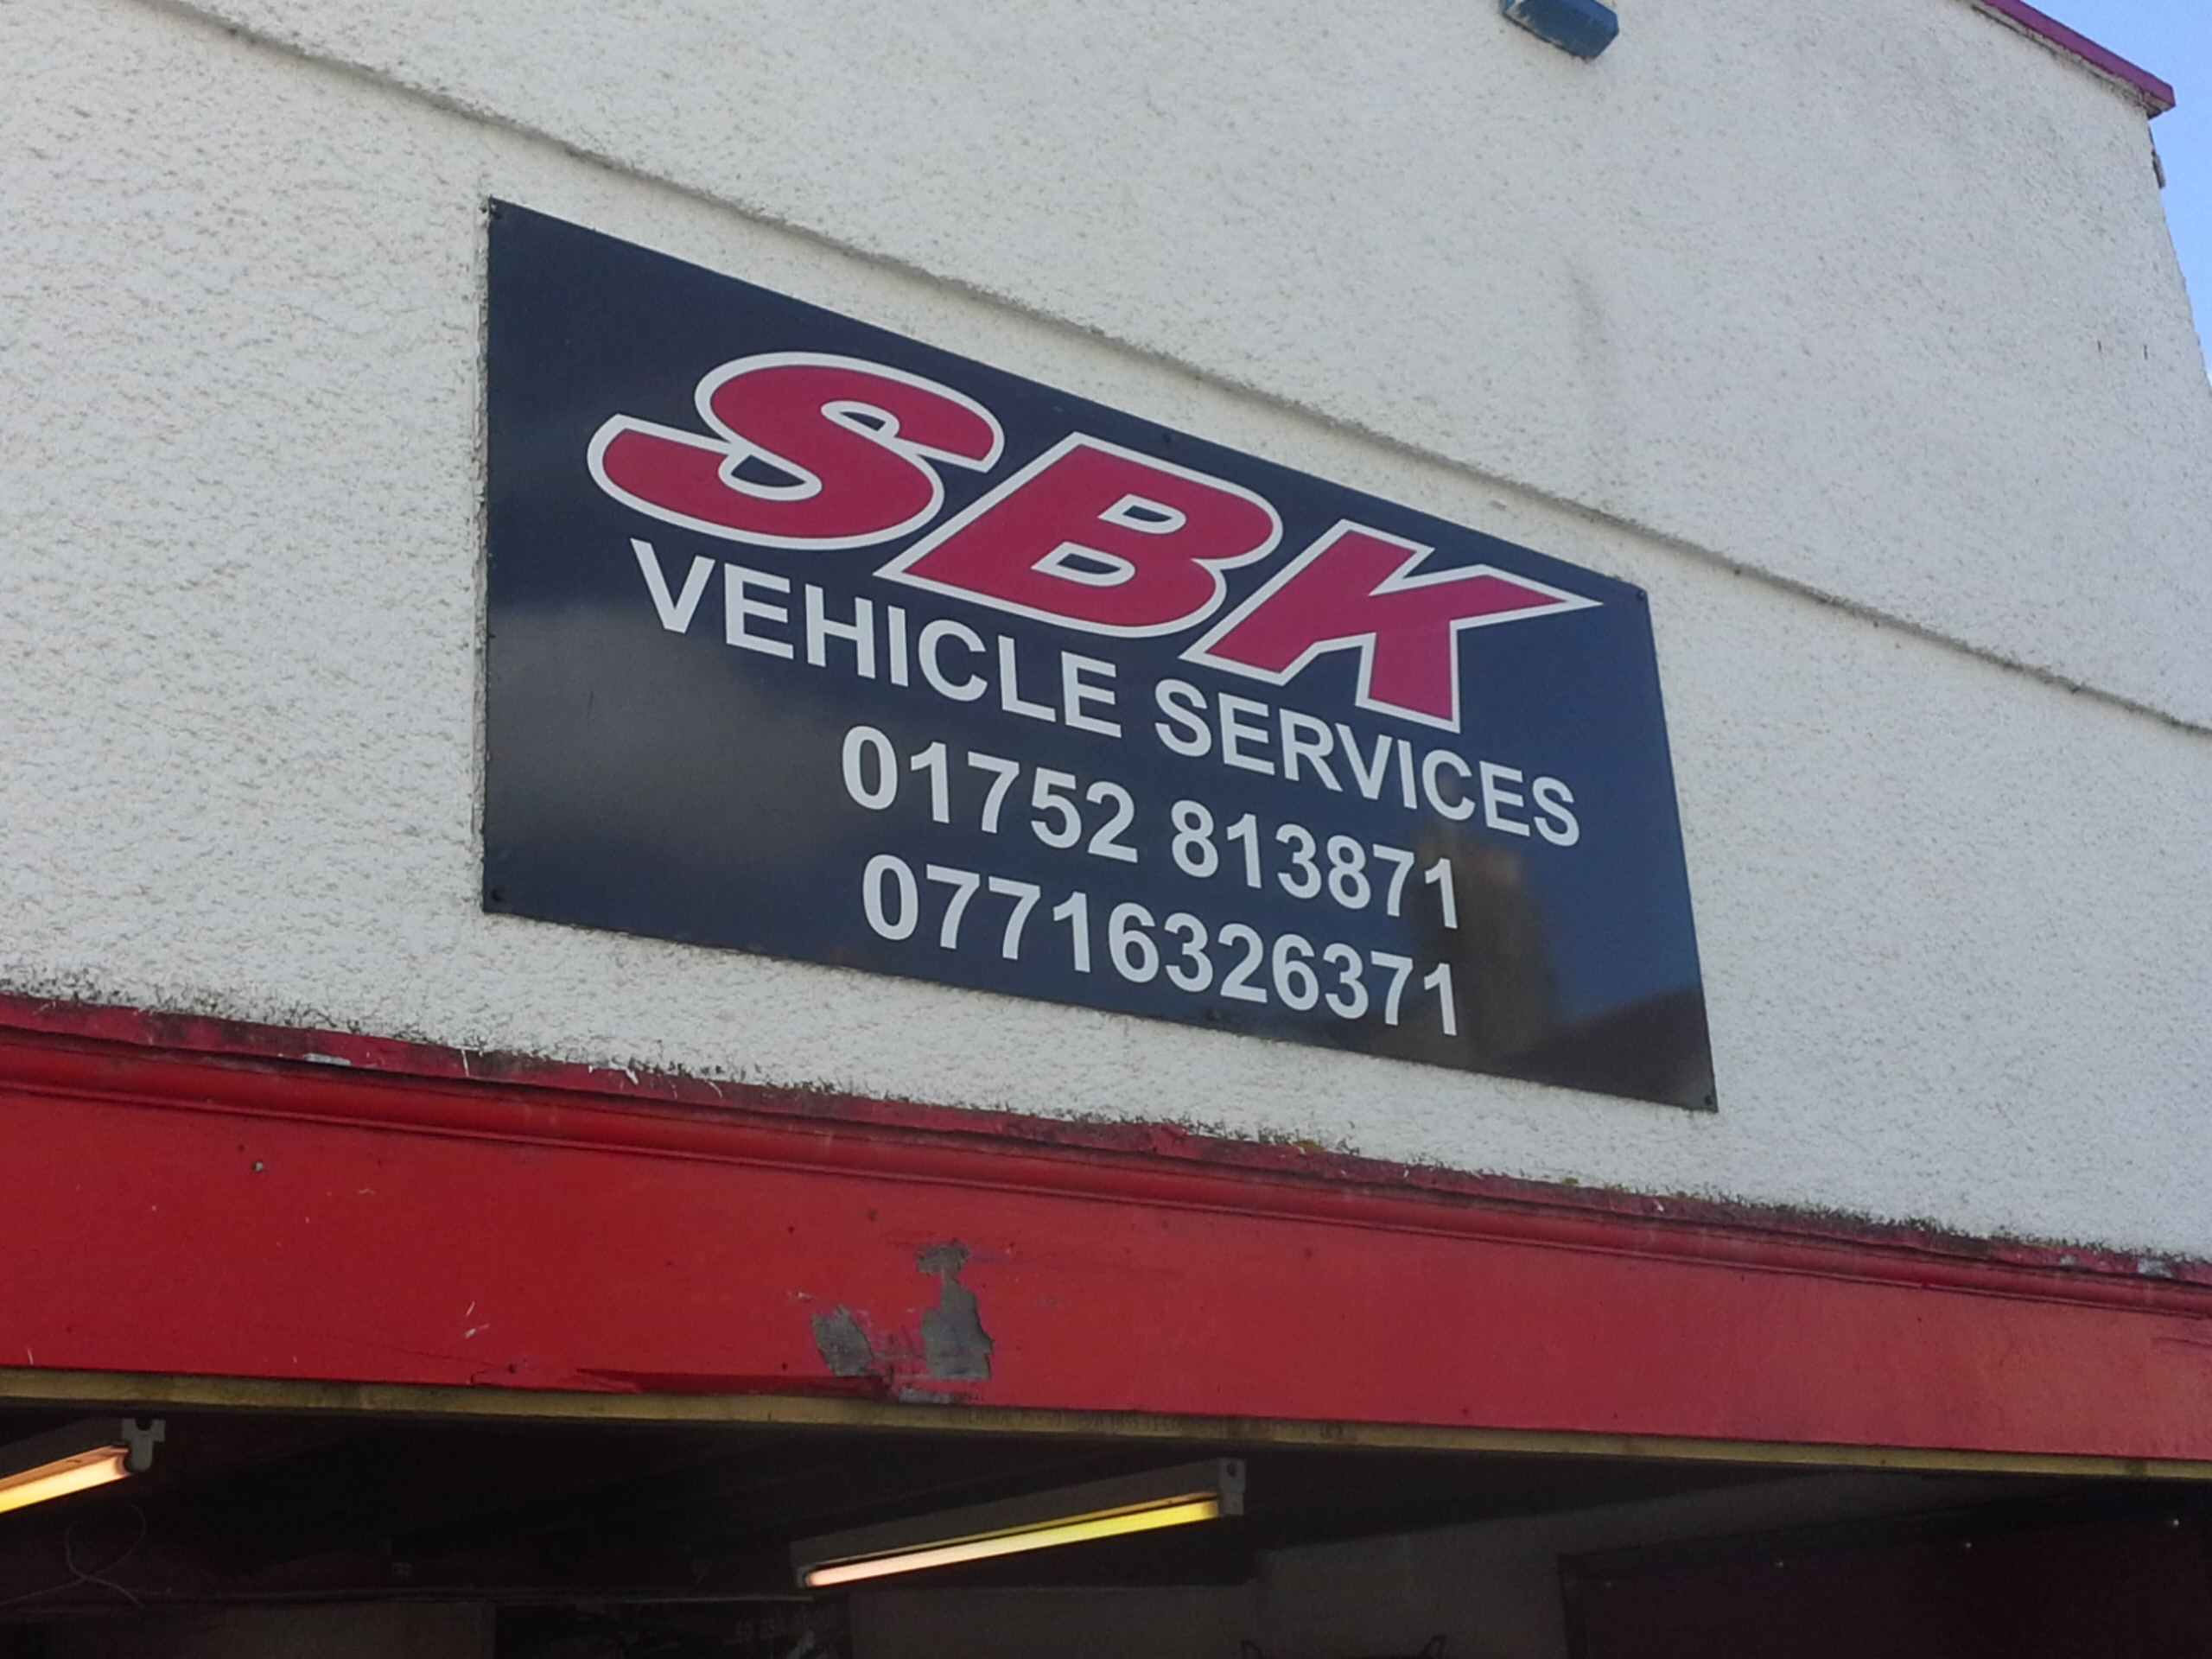 SBK Vehicle Services